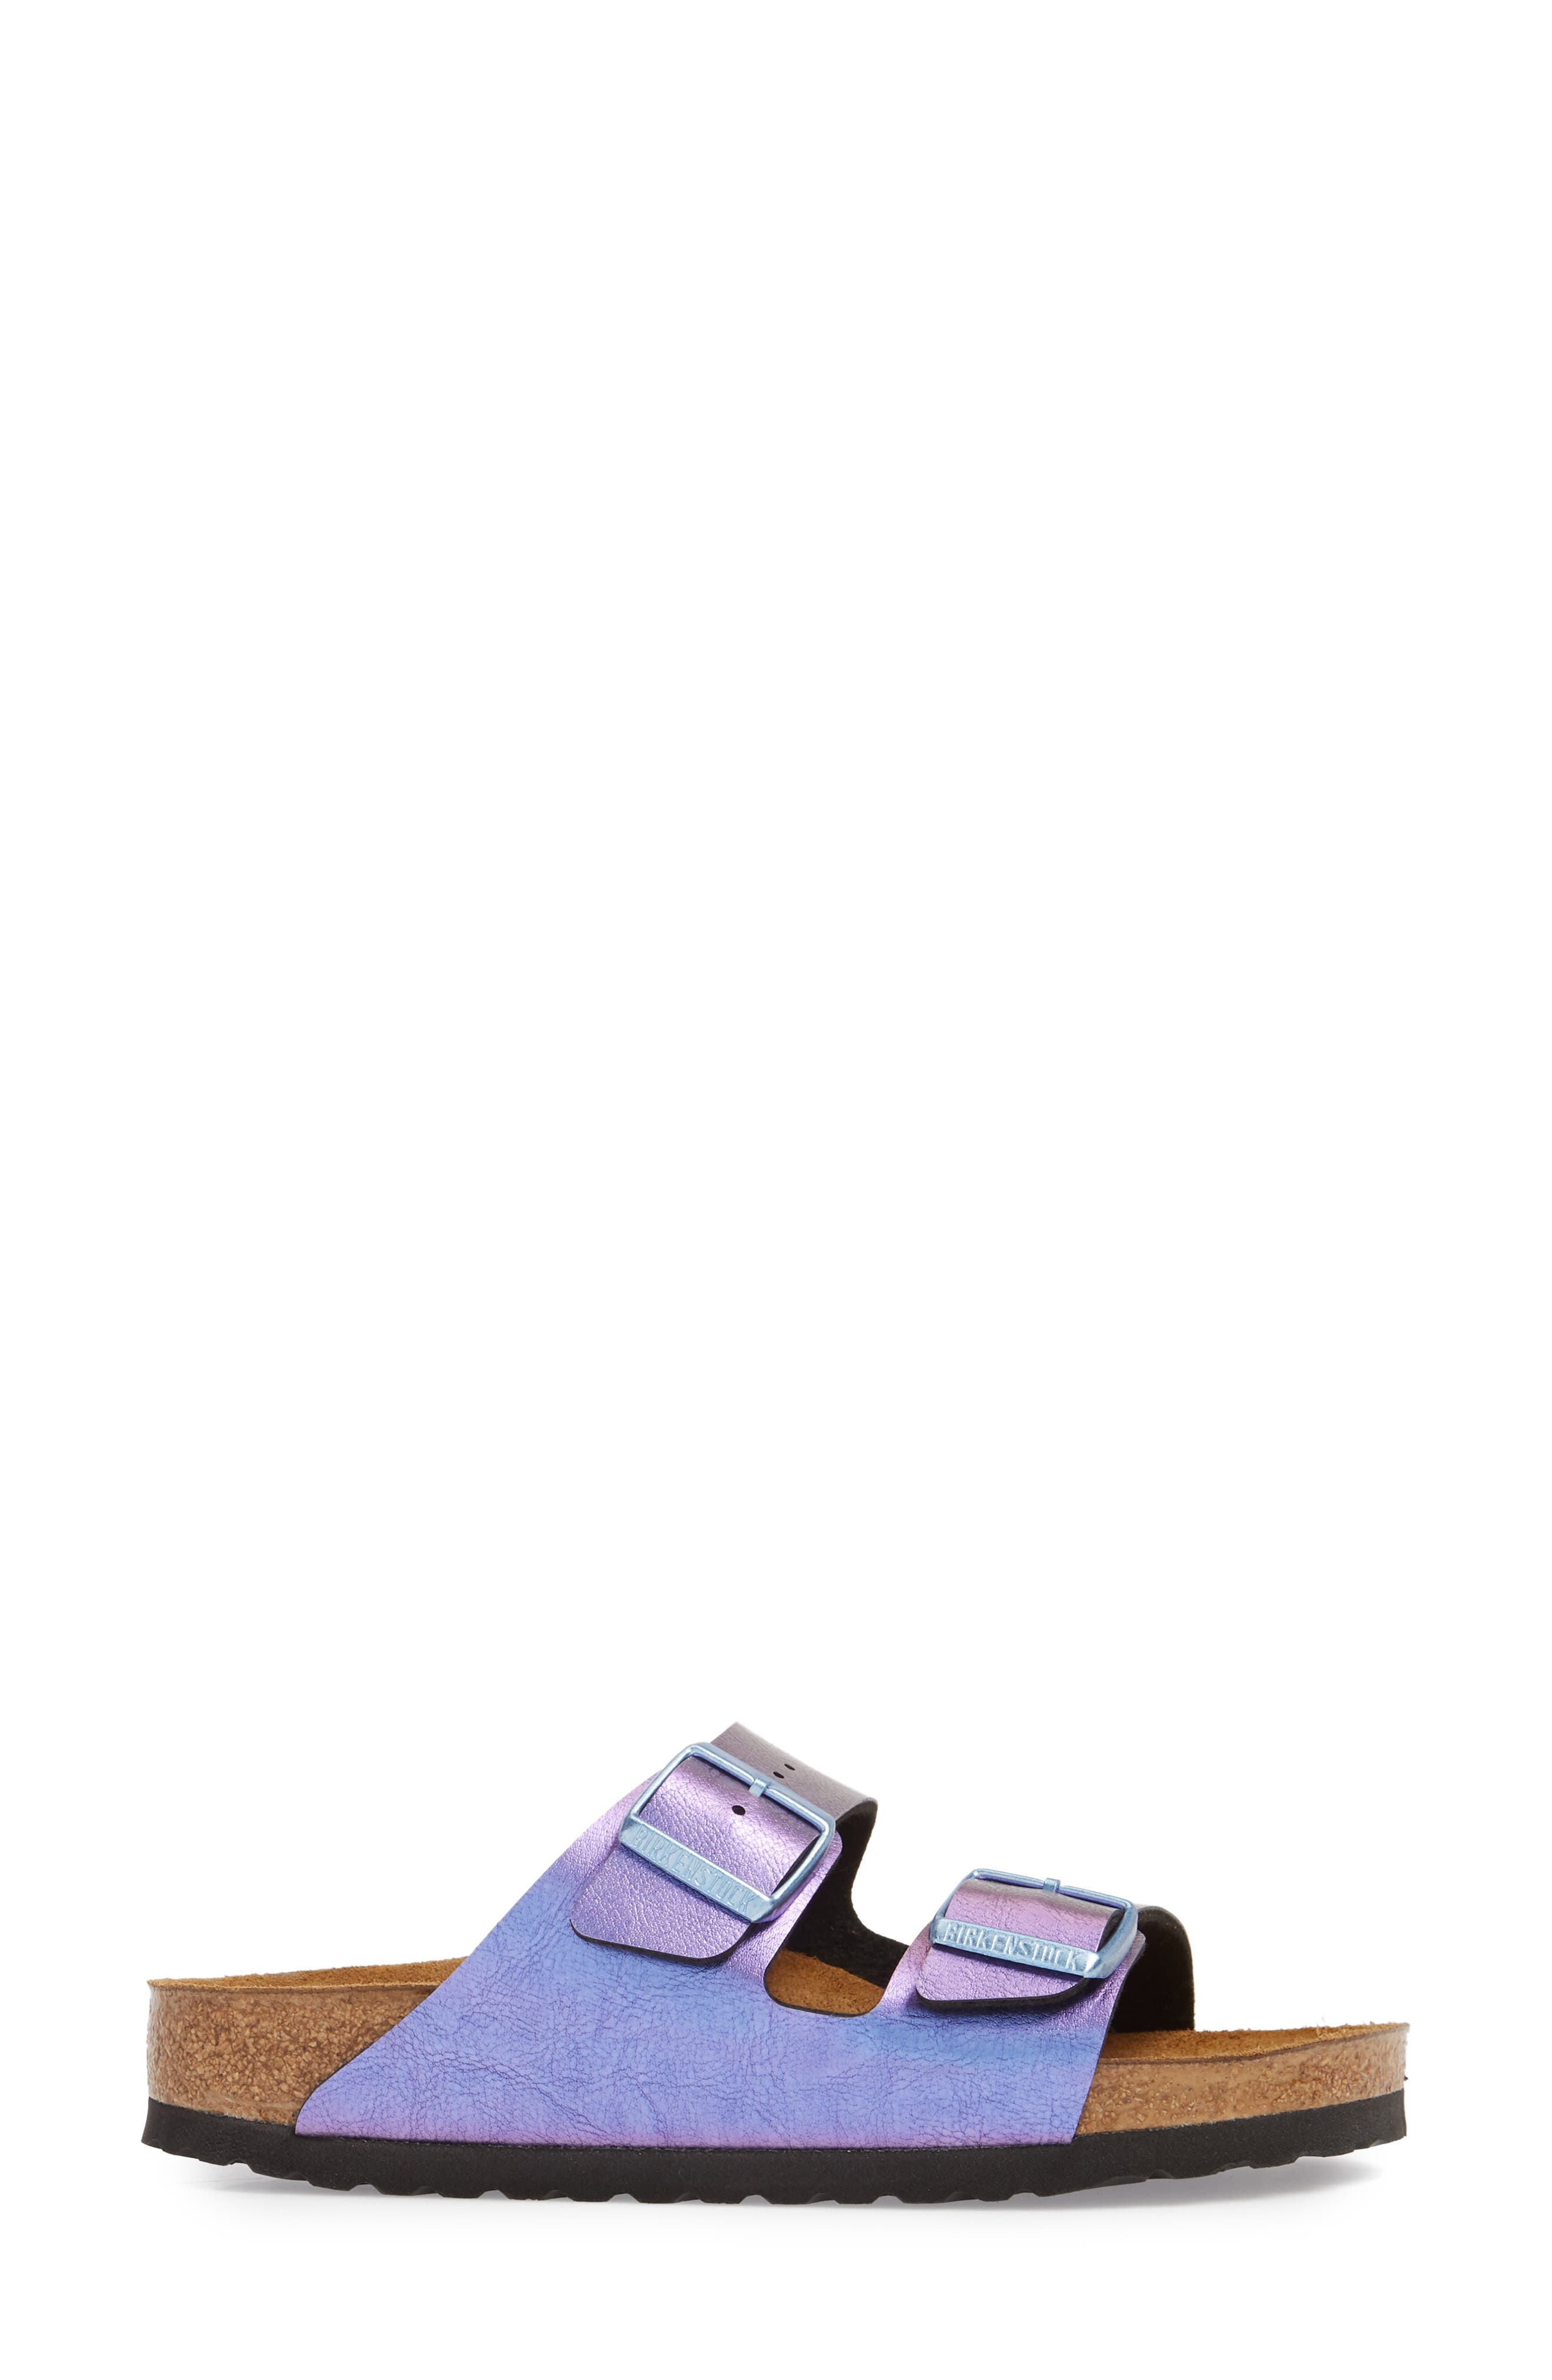 Arizona Graceful Birko-Flor<sup>™</sup> Sandal,                             Alternate thumbnail 3, color,                             VIOLET